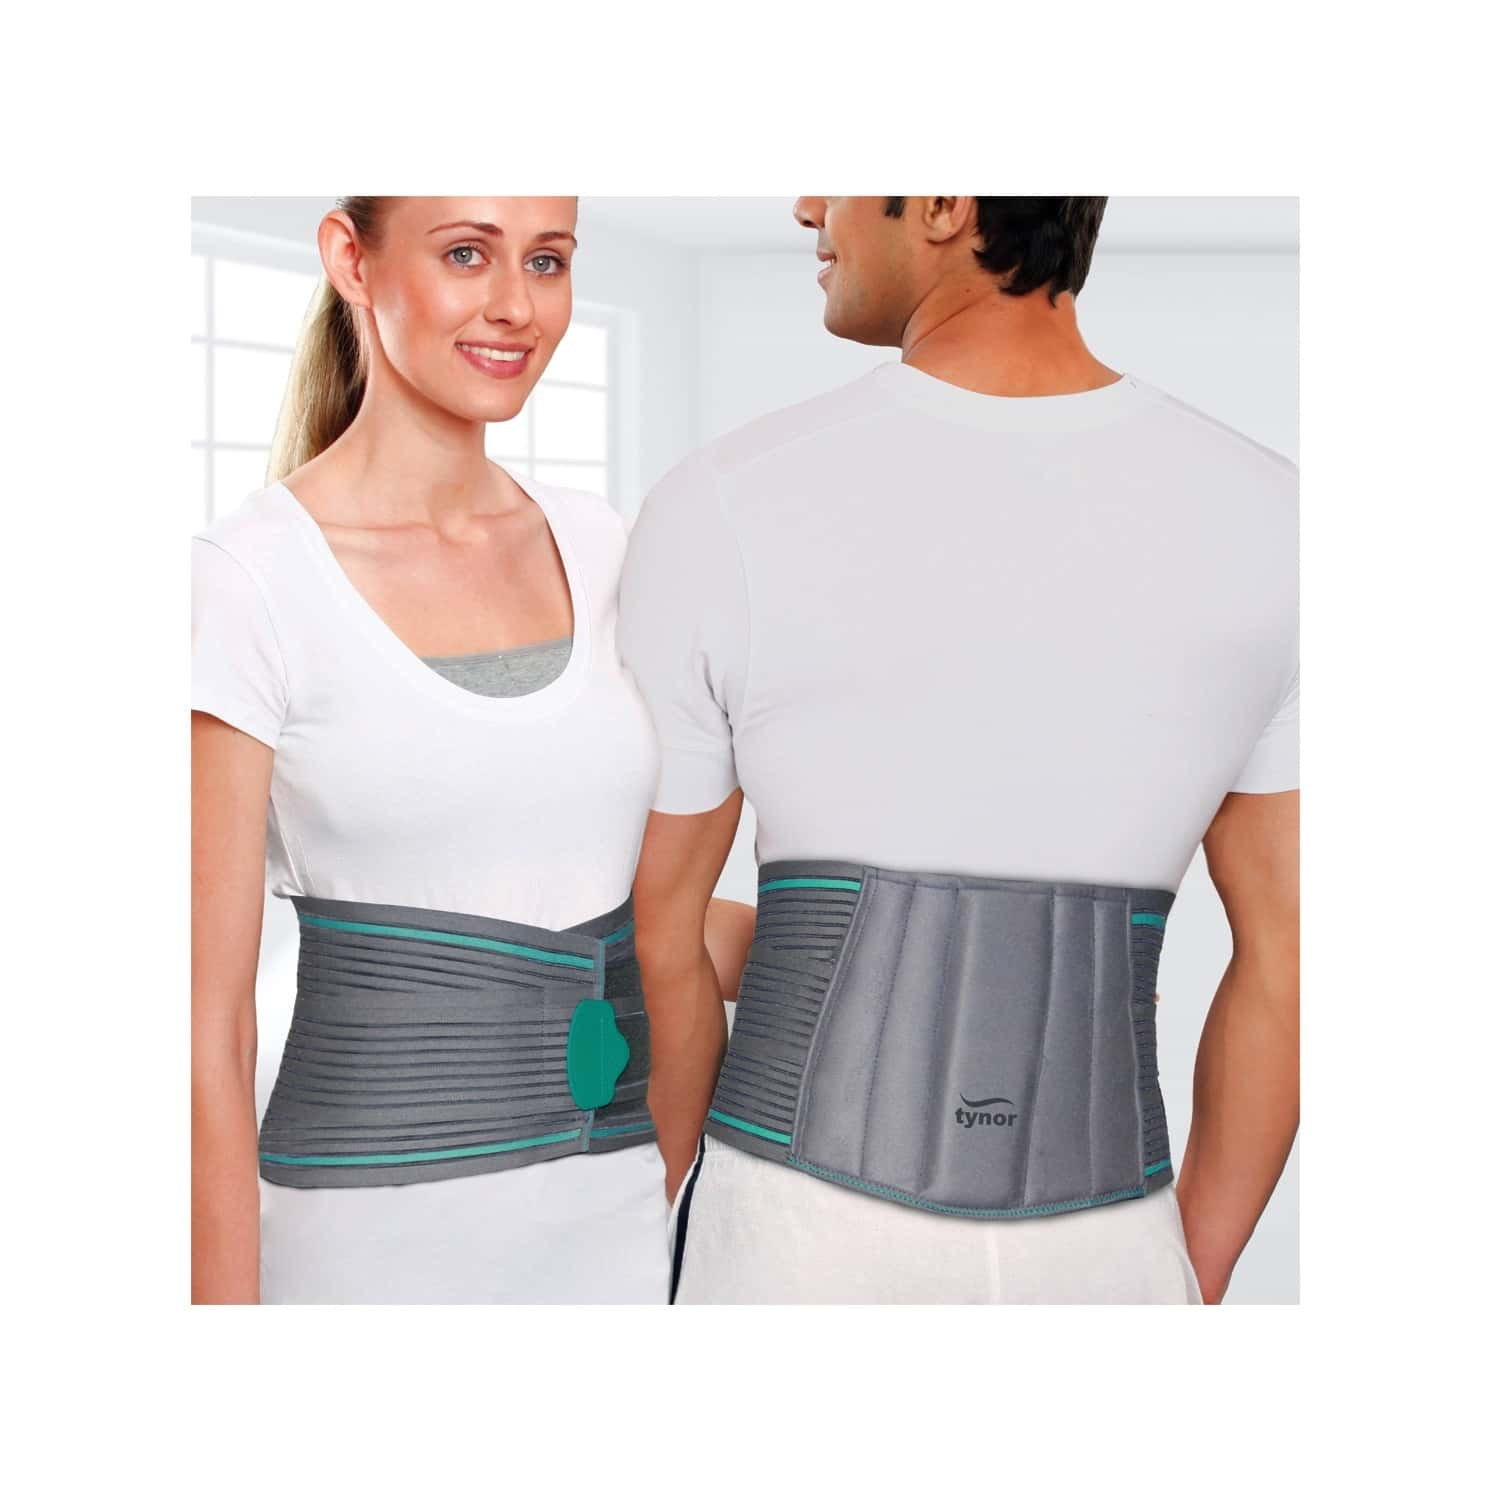 Tynor Lumbo Sacral Belt ( Back Support,compression, Flexible Splint) - Small